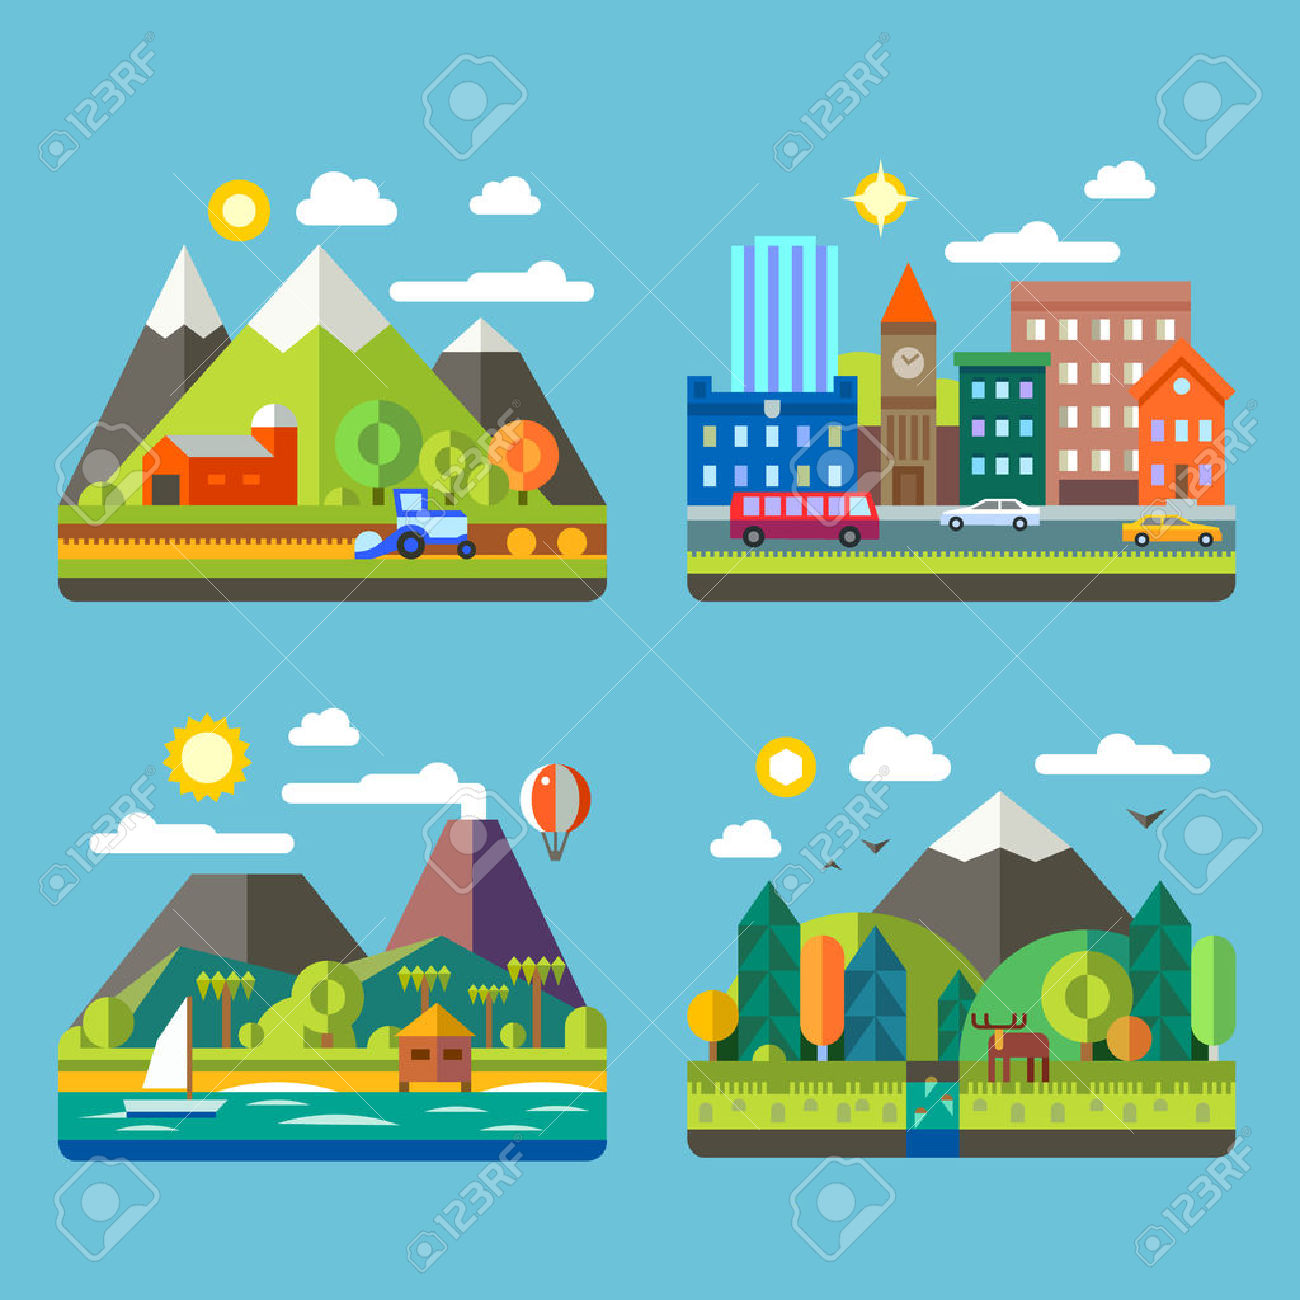 Color Vector Flat Illustrations Urban And Village Landscapes.